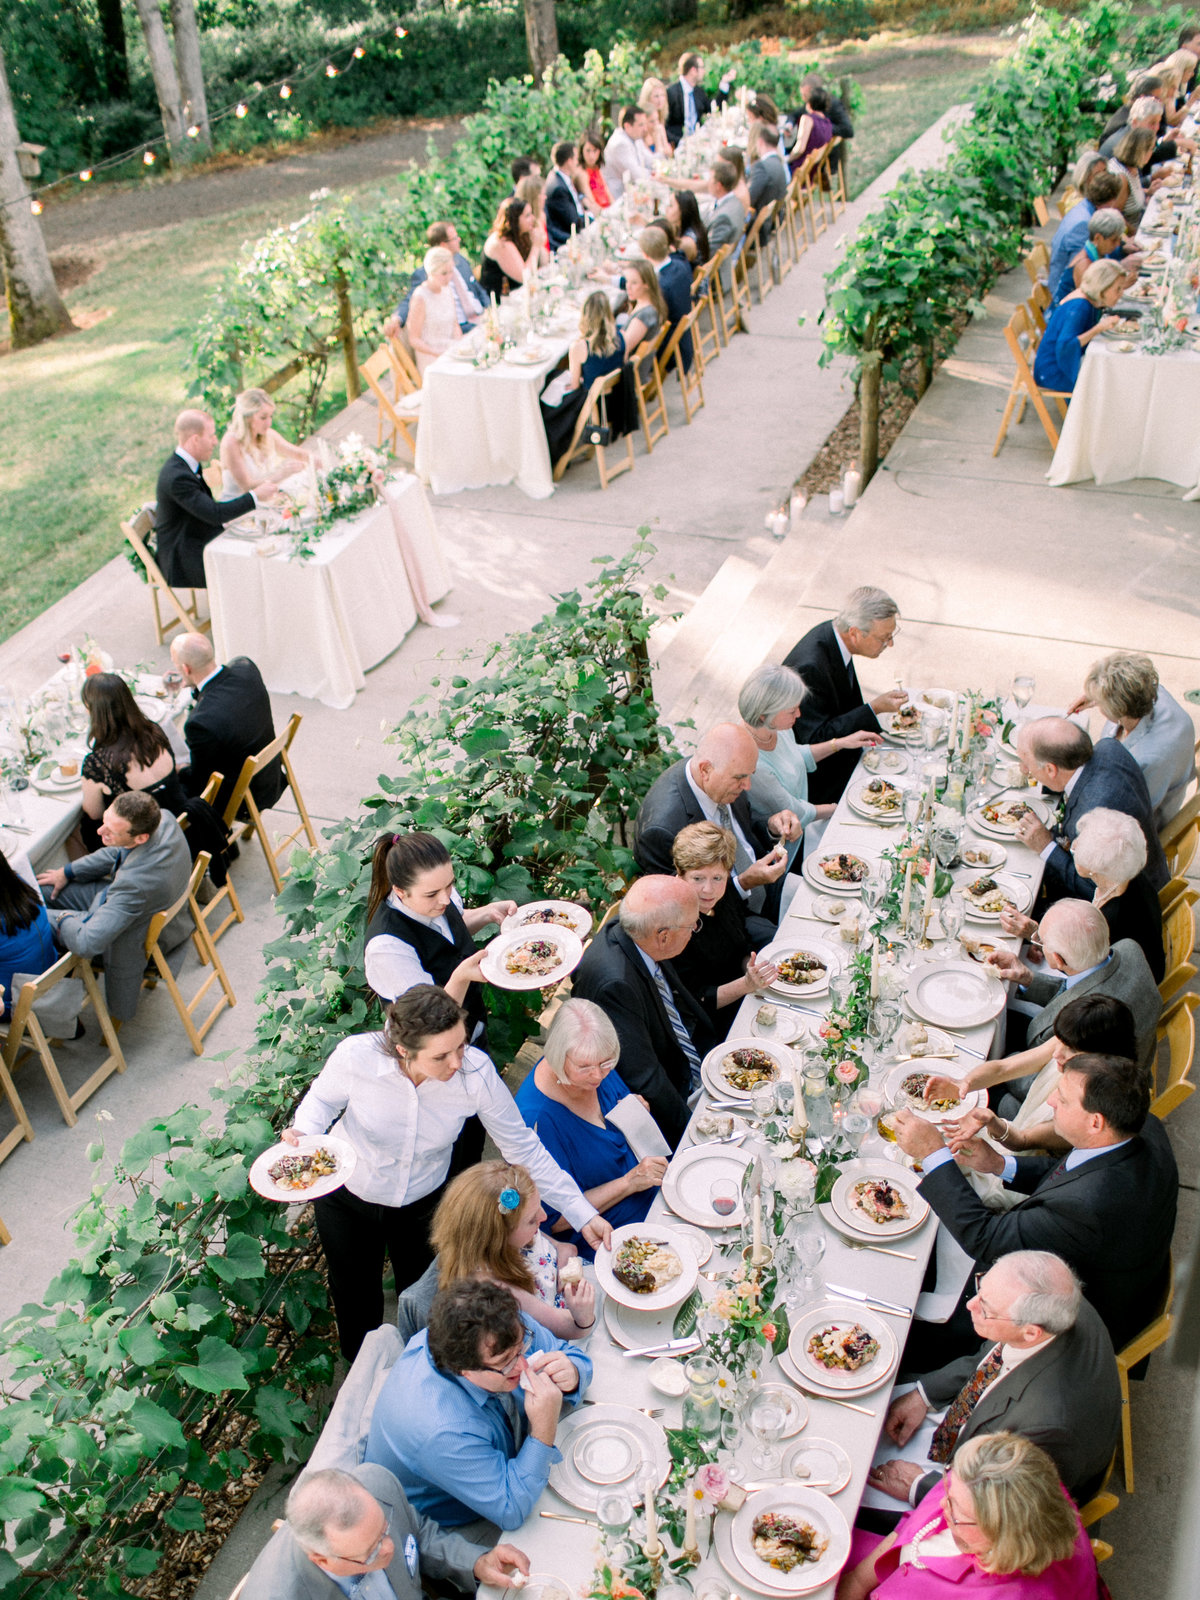 guests dining at a wedding